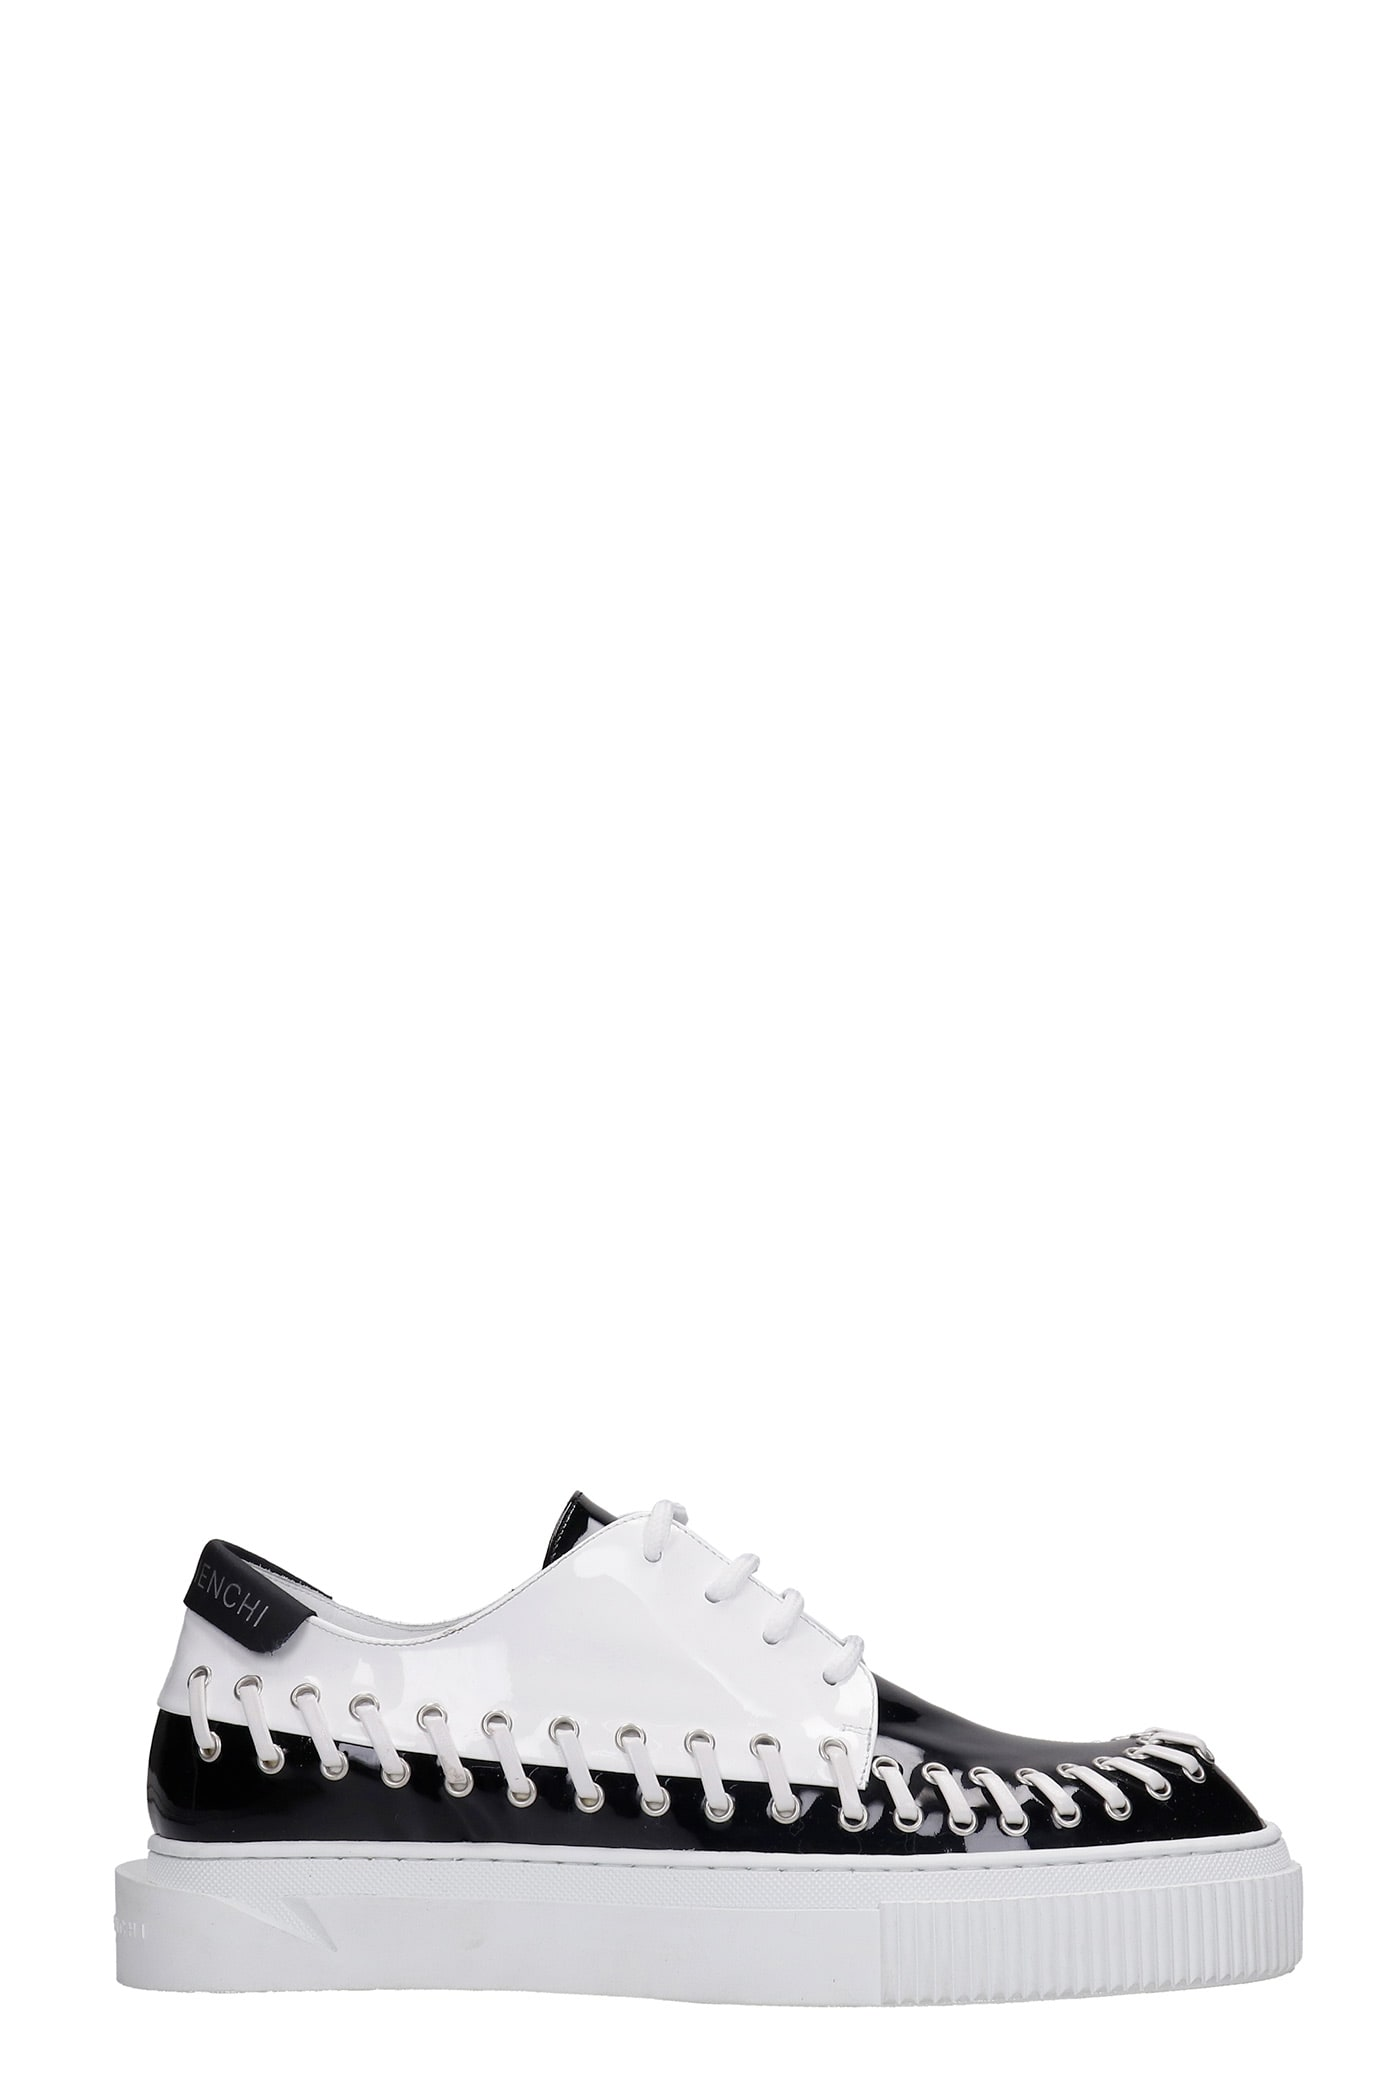 Brooklyn Sneakers In Black Patent Leather